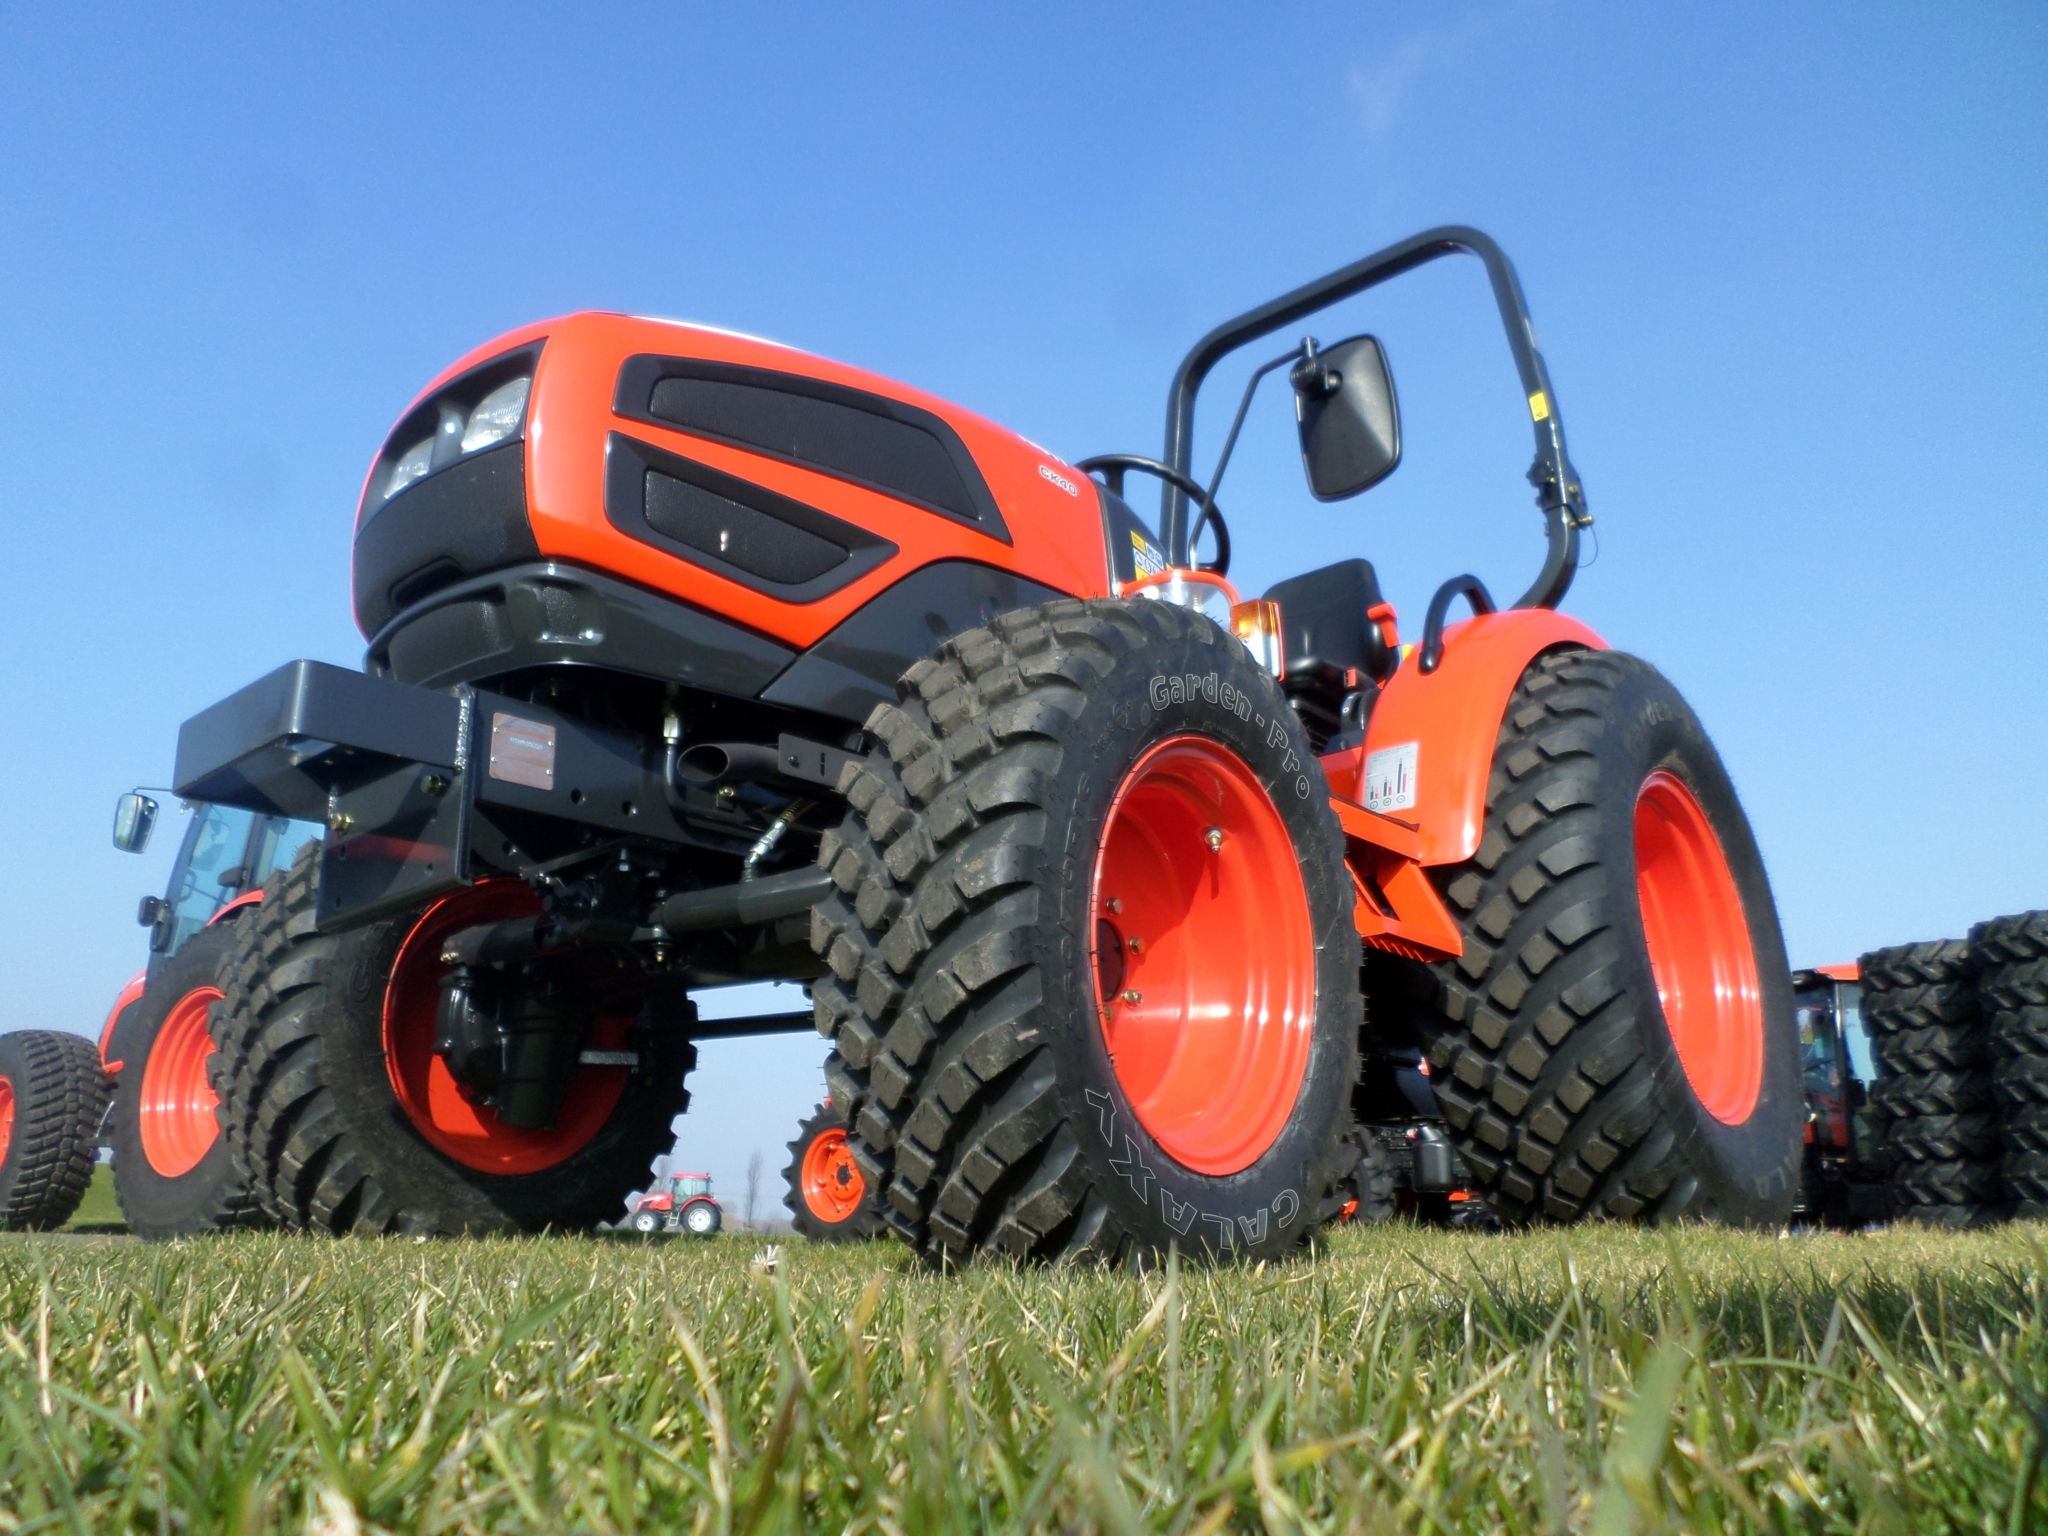 ATG extends Galaxy Garden Pro lawn and turf tyre range